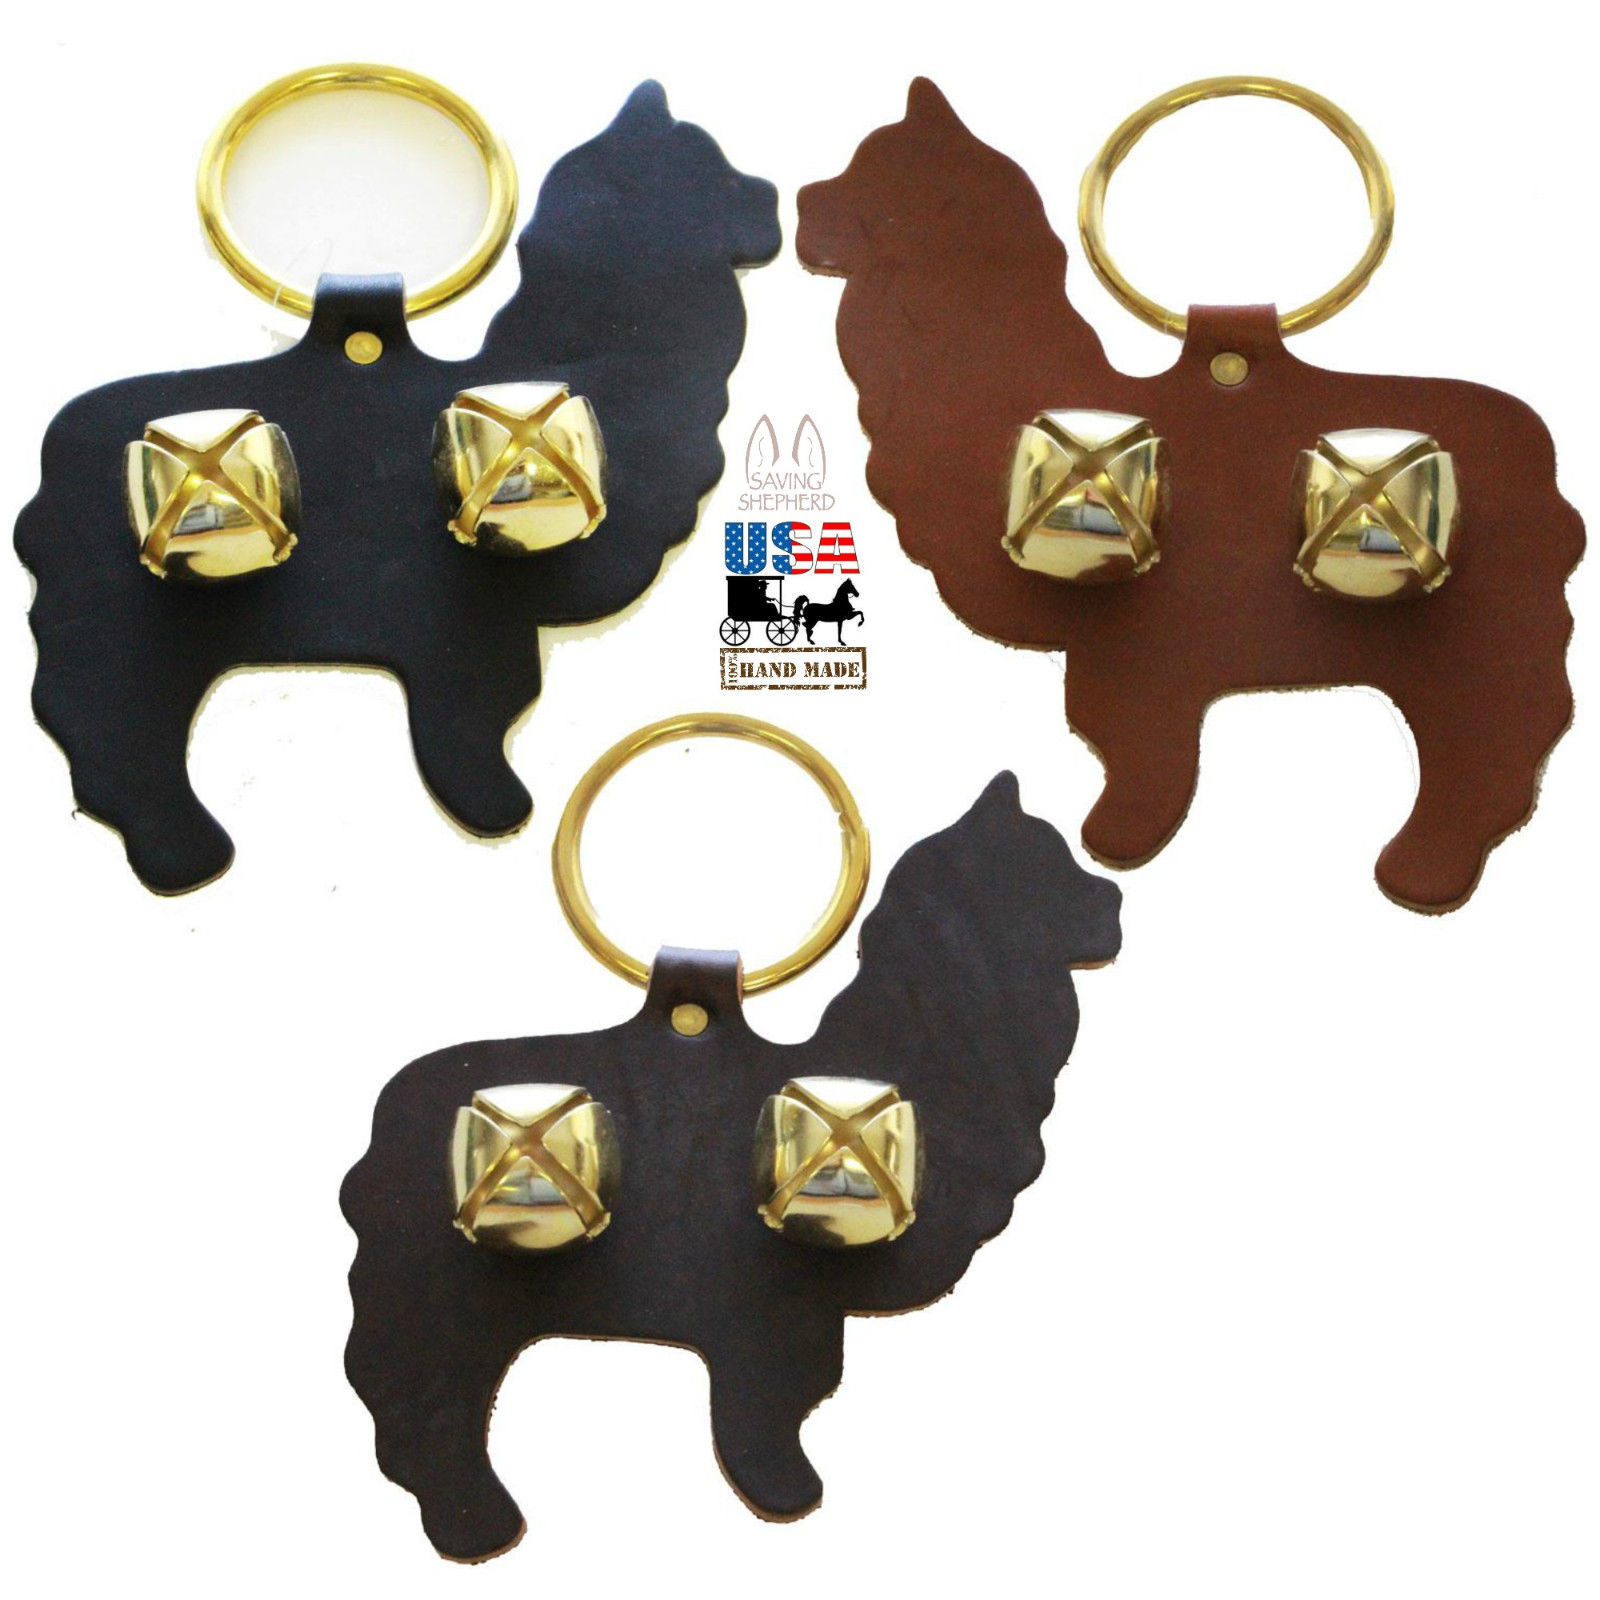 Primary image for ALPACA DOOR CHIME - BROWN LEATHER w/ BRASS SLEIGH BELLS Amish Handmade in USA